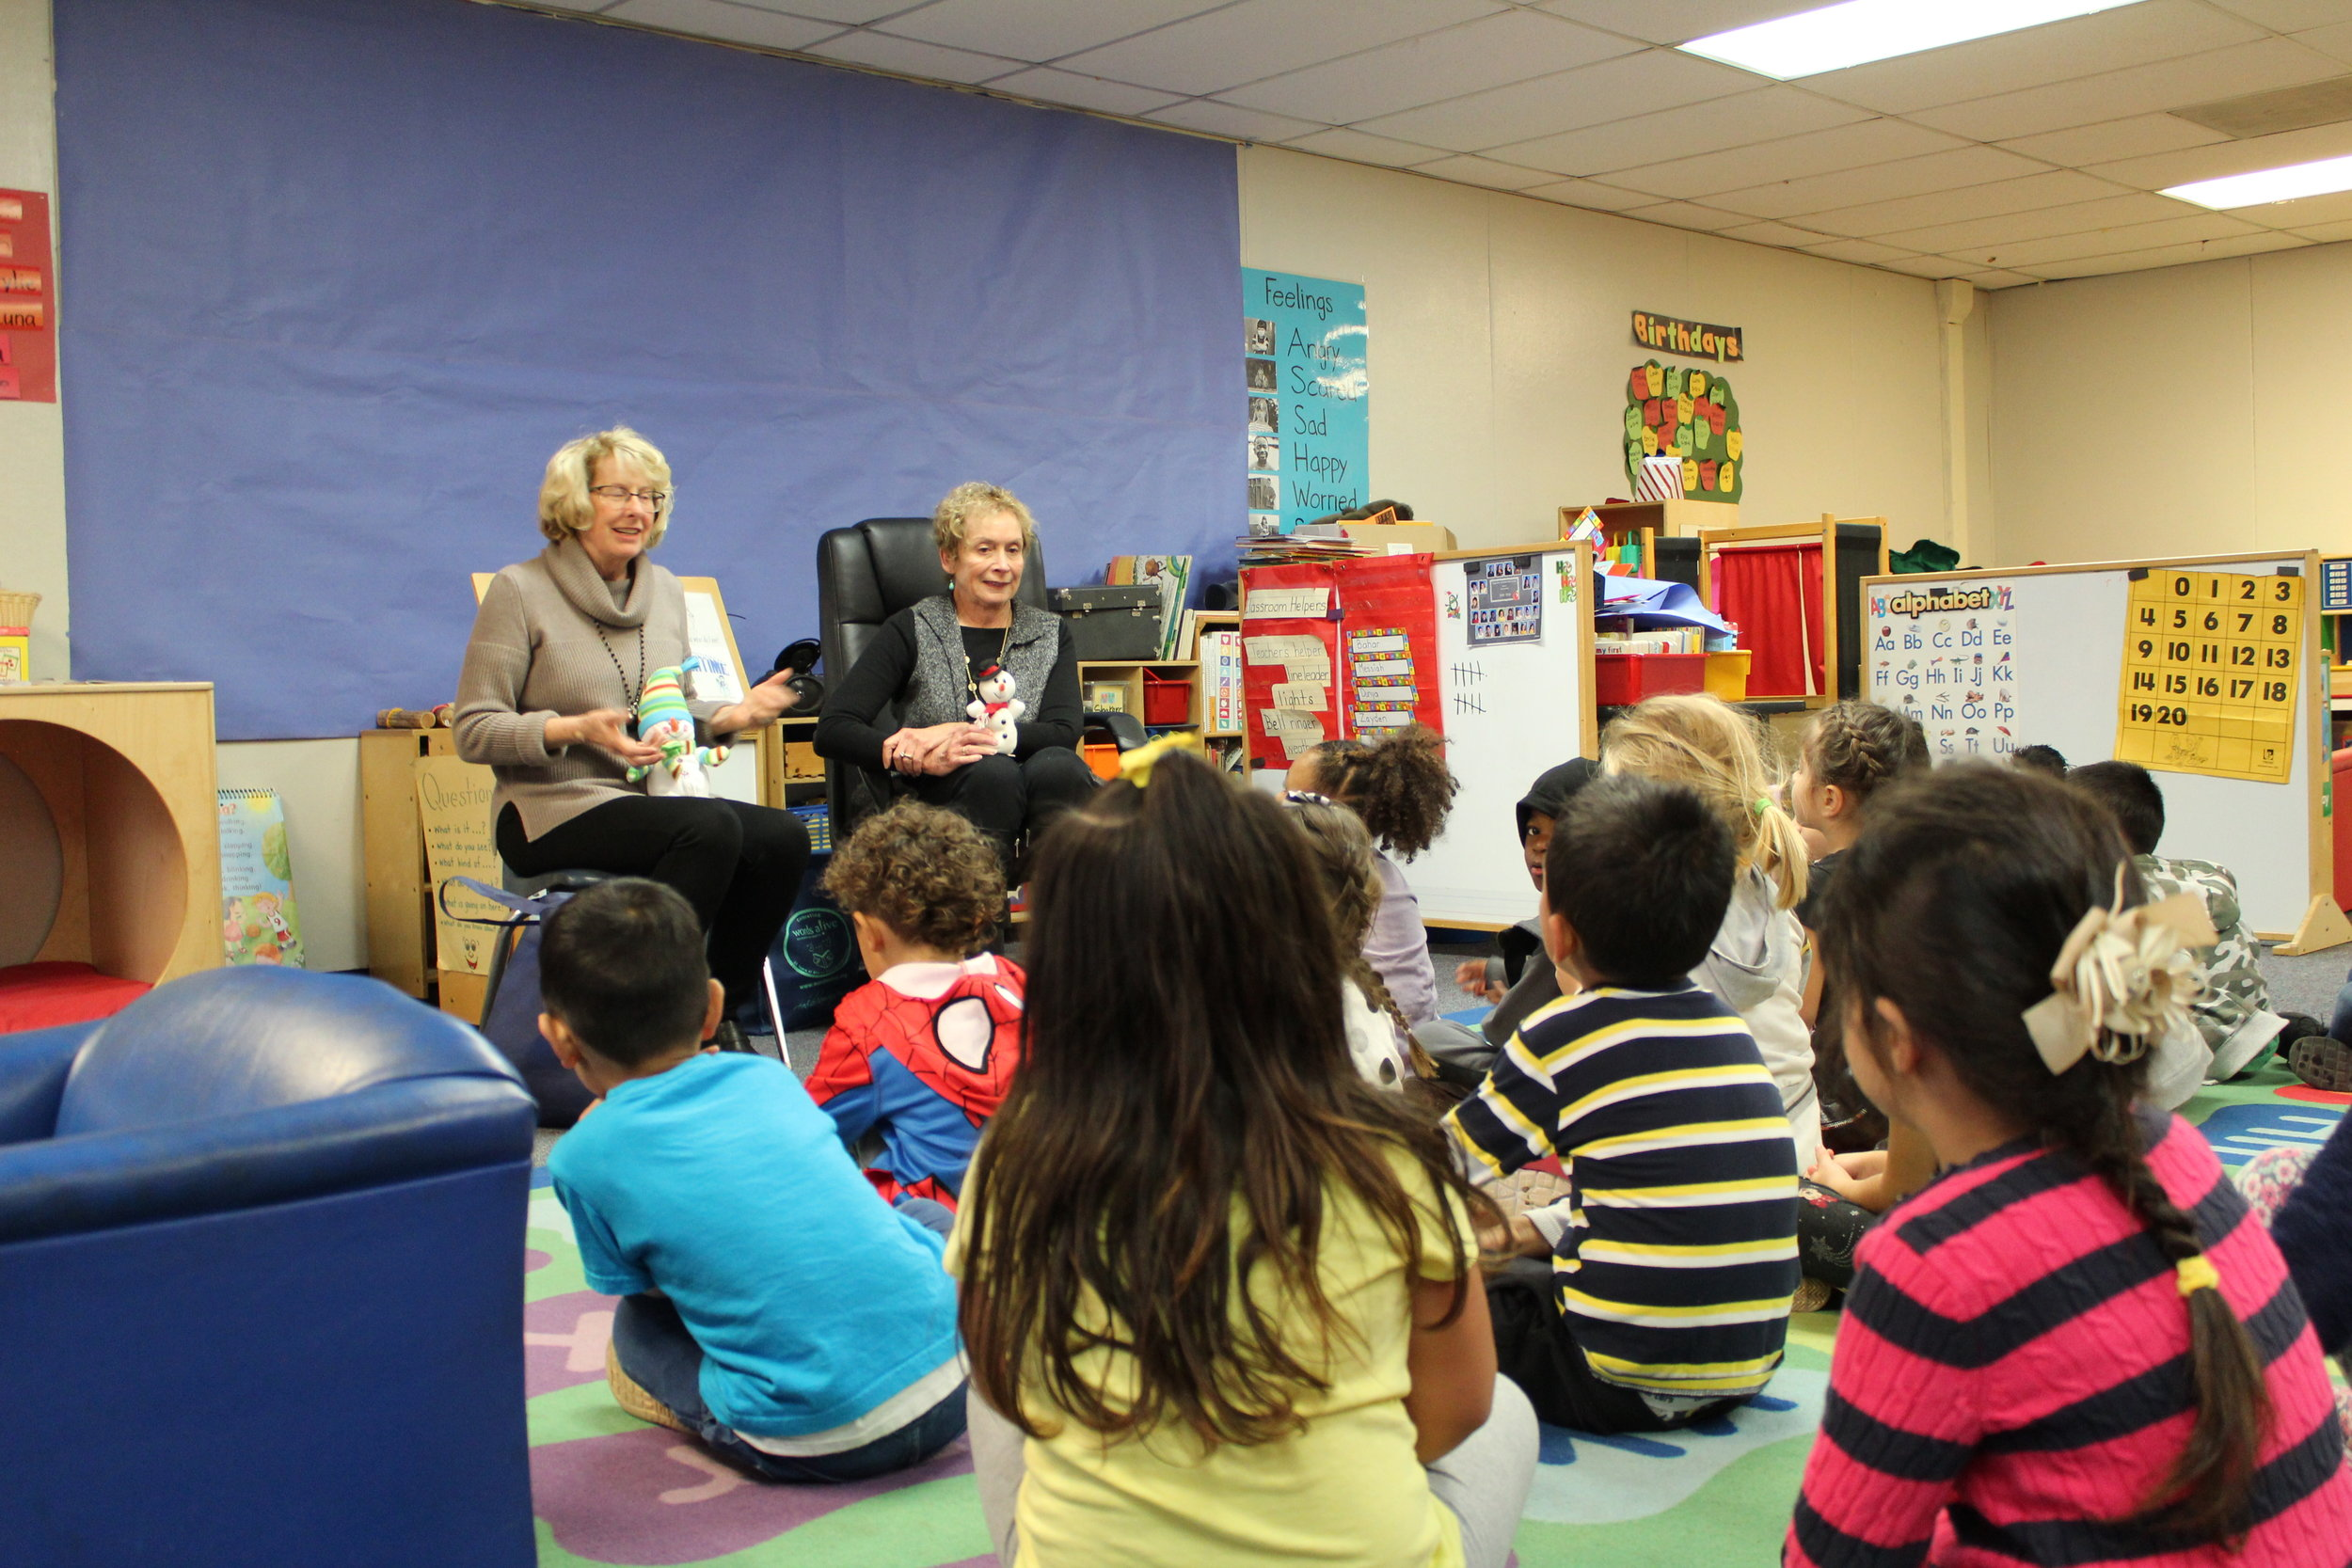 An image of two of our Read Aloud Program volunteers engaging with their preschool classroom.